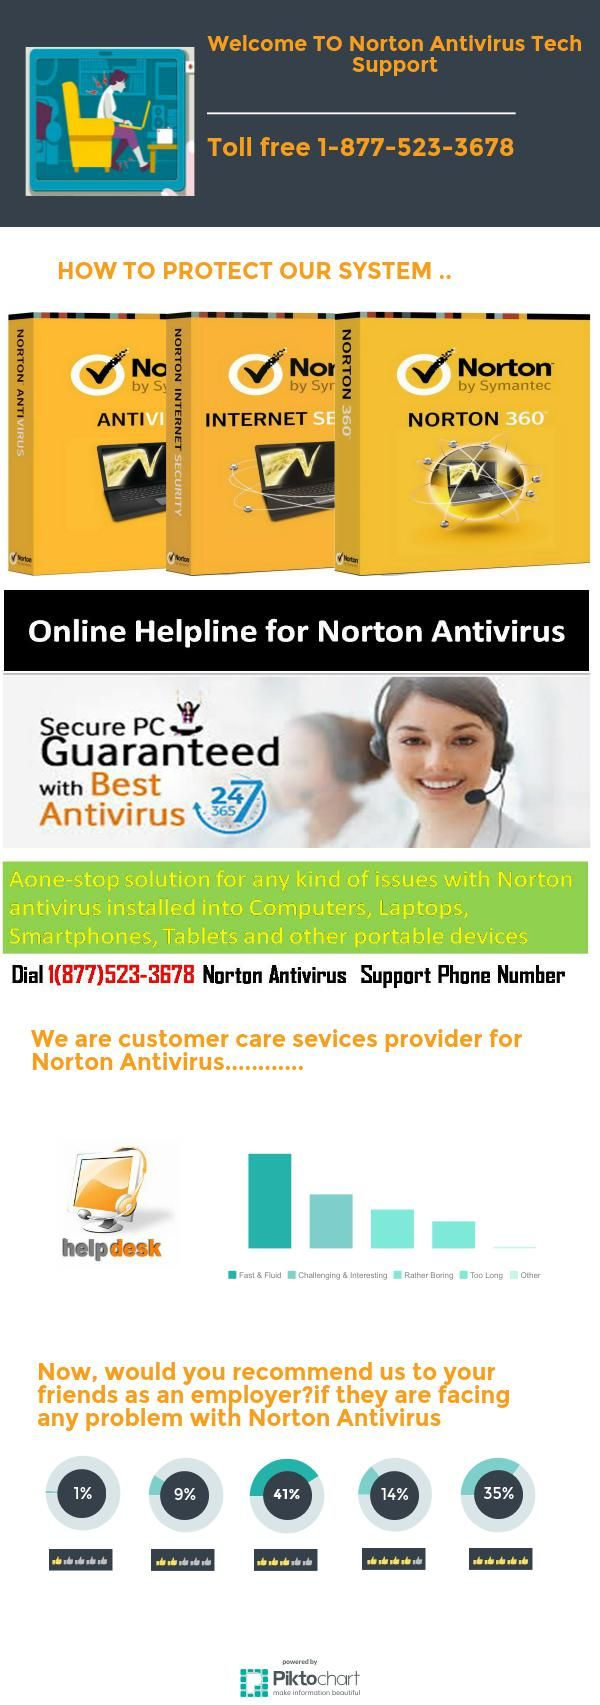 Norton Antivirus tech support number 1-877-523-3678